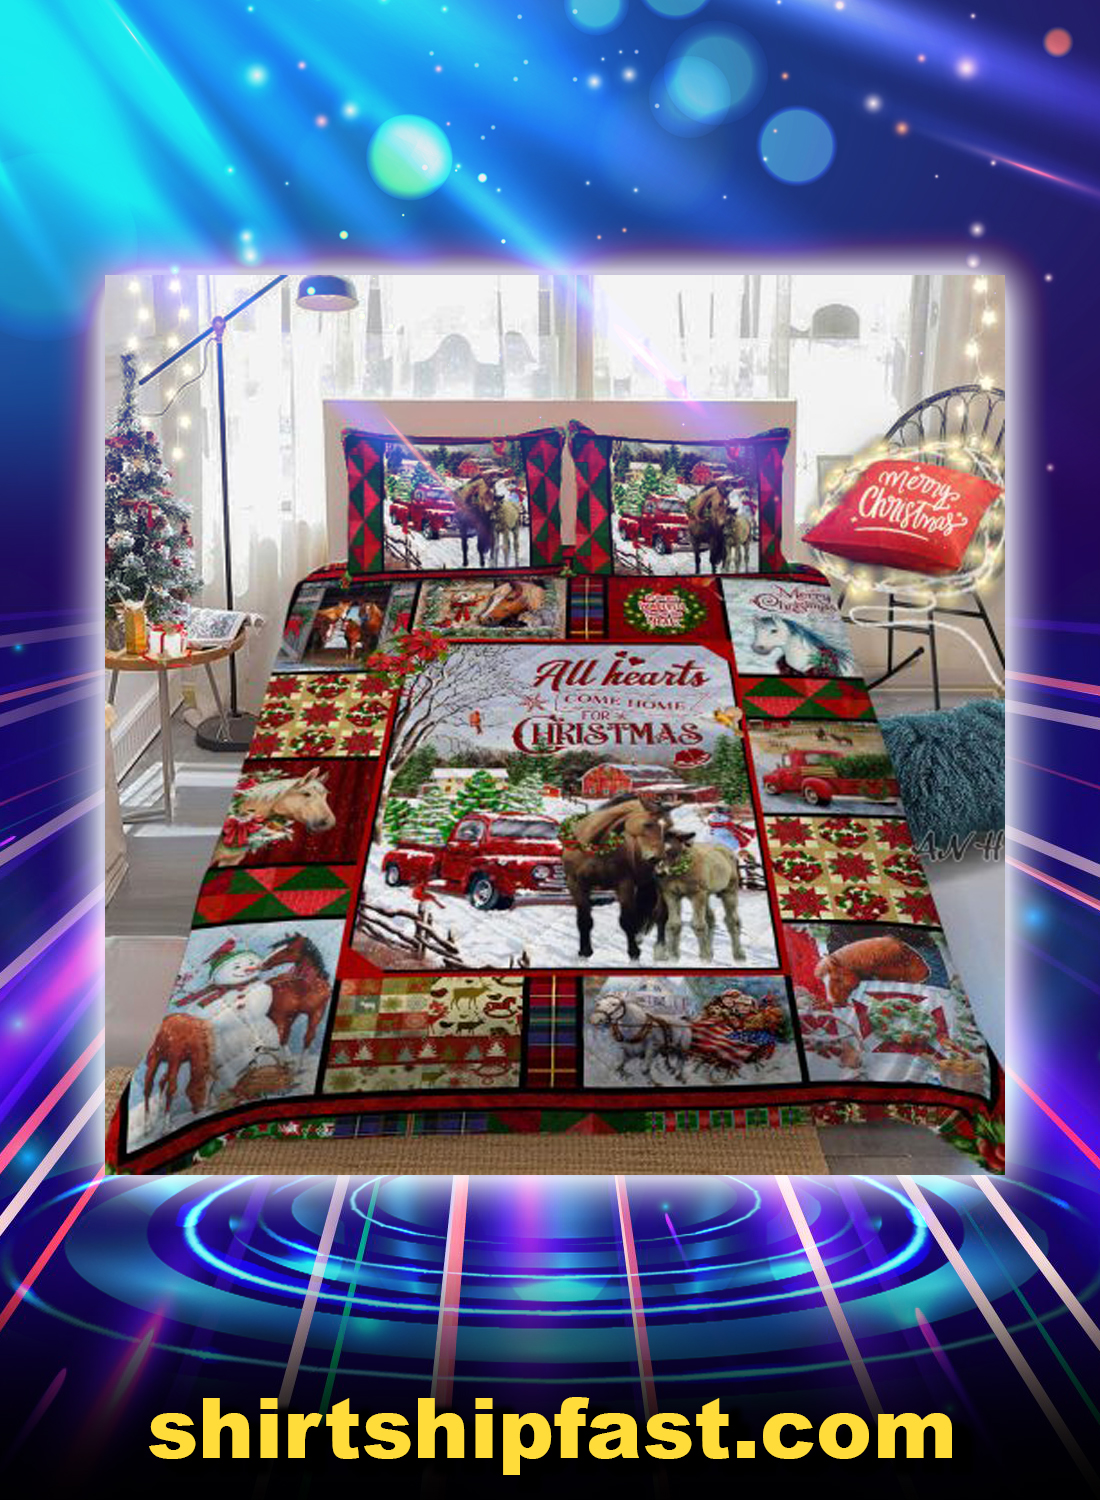 Horse all hearts come home for christmas bed set